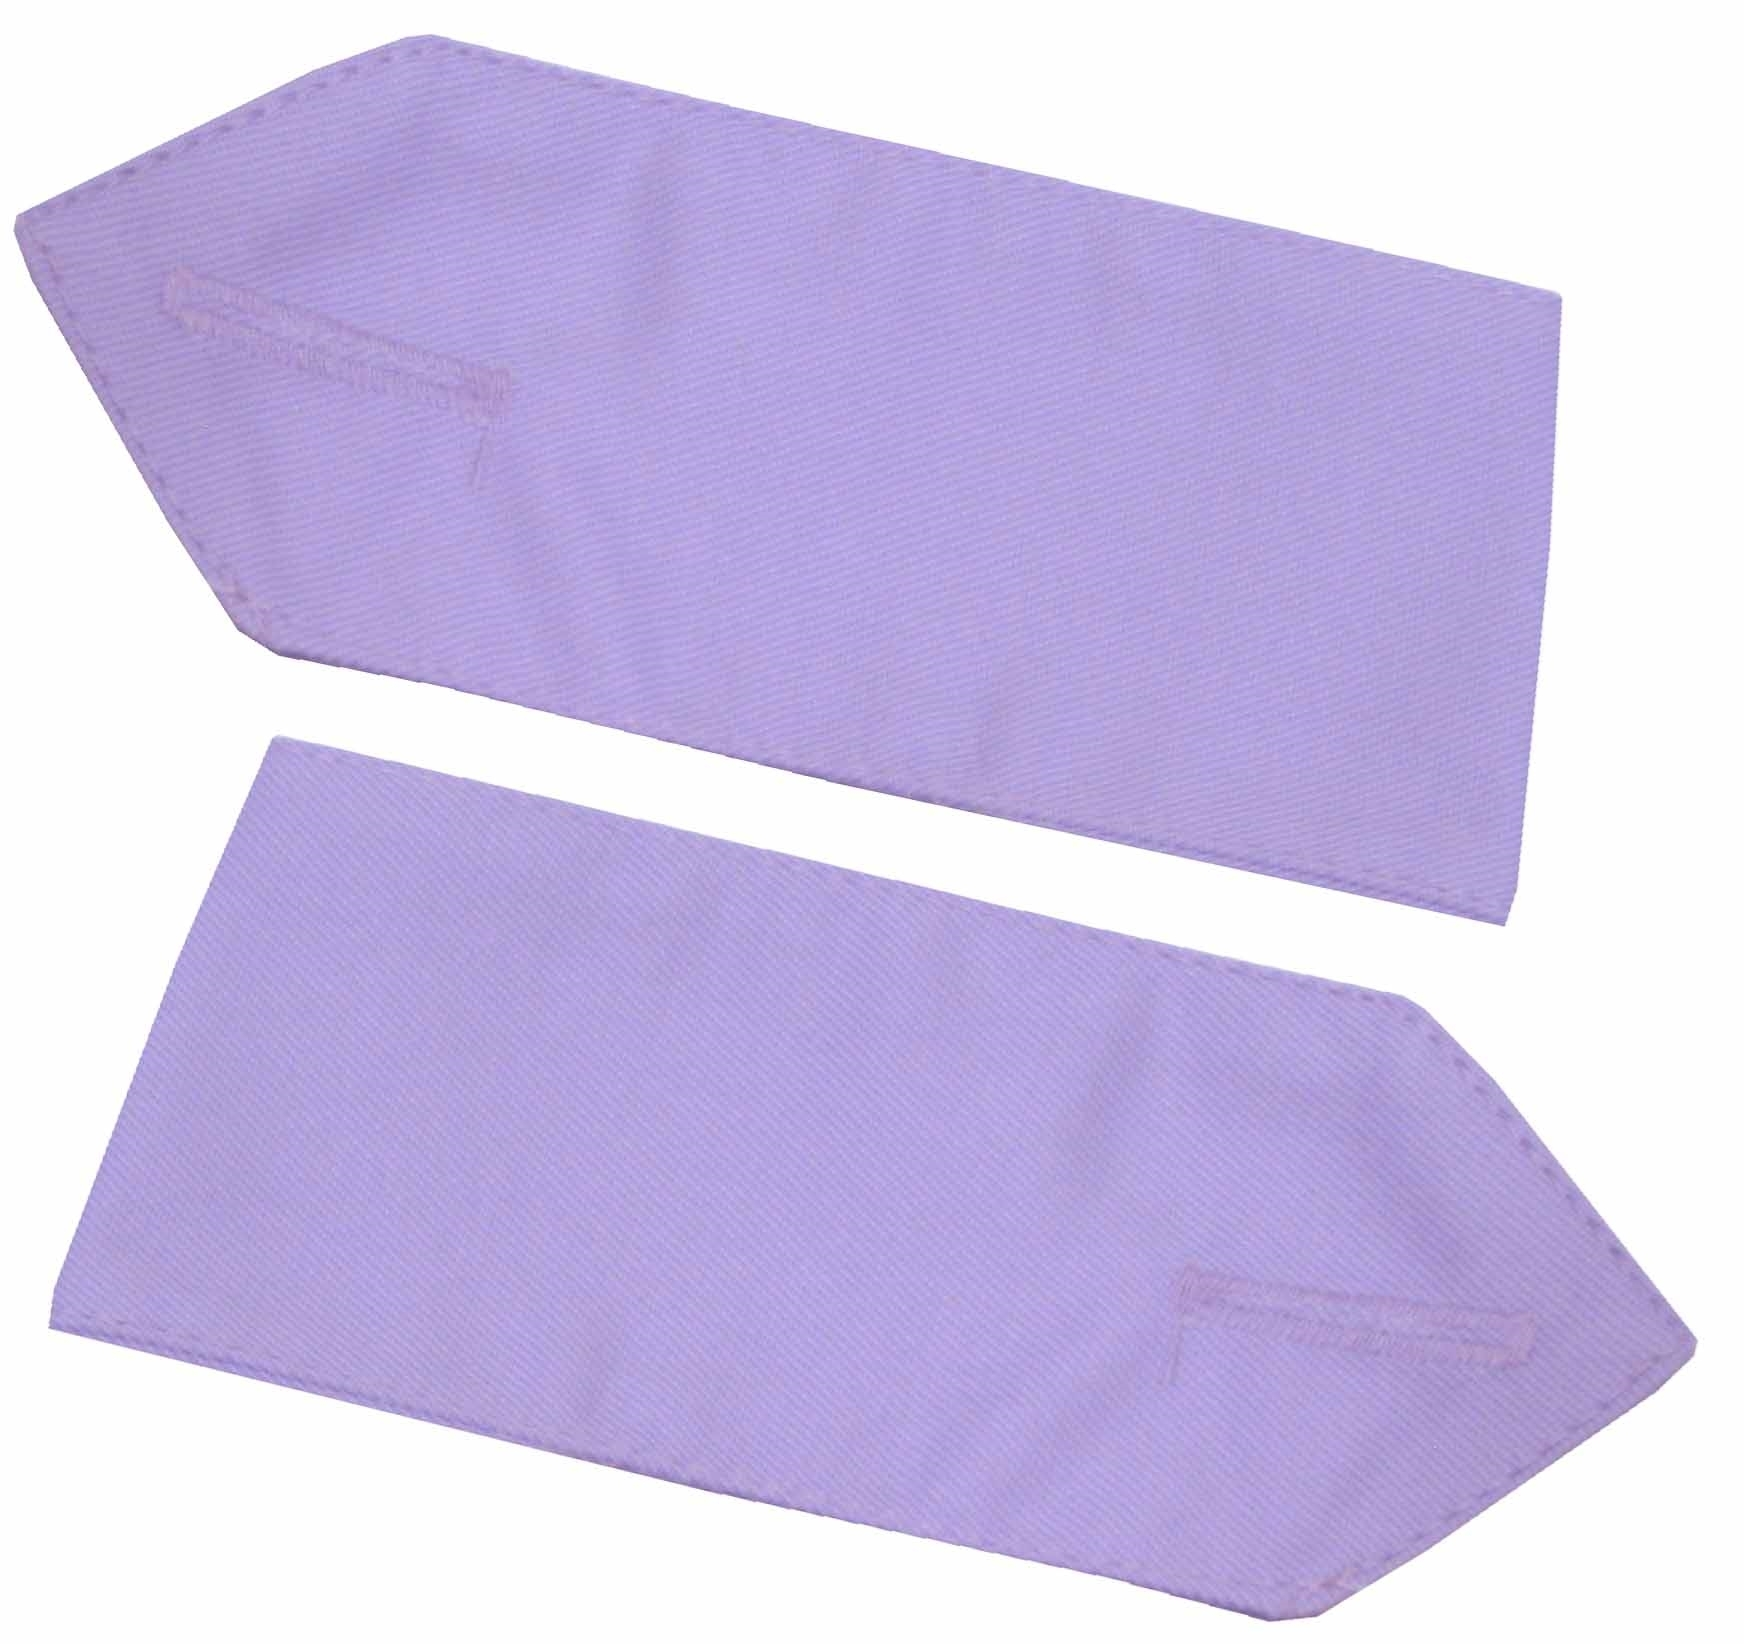 Picture of Epaulettes - Pair - Lilac